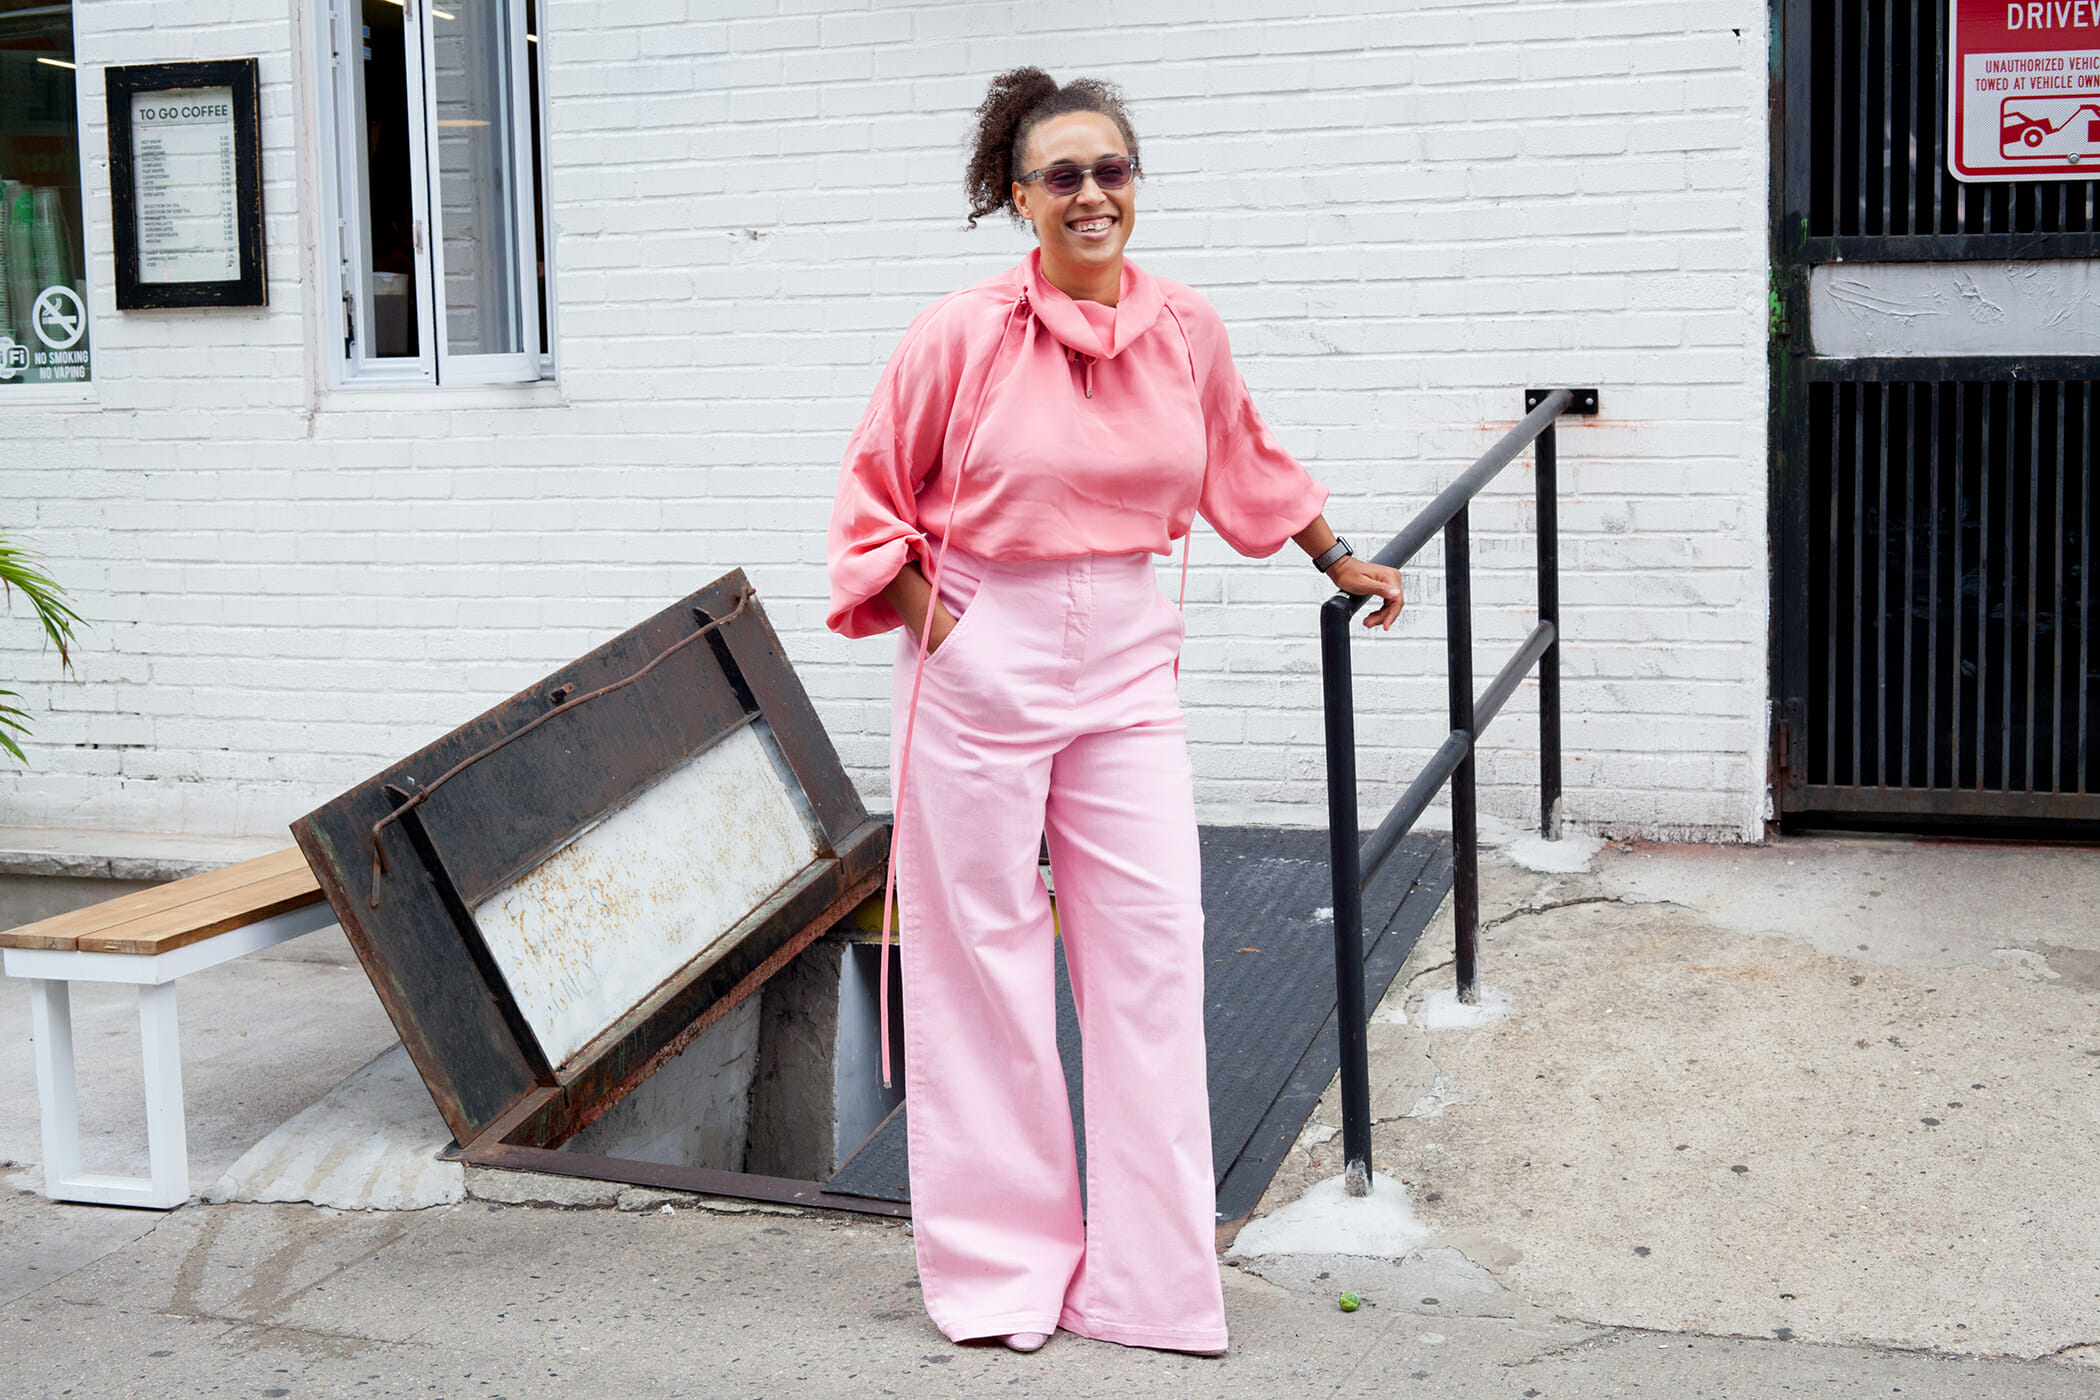 Man Repeller Asked 4 Women to Break Their Own Style Rules